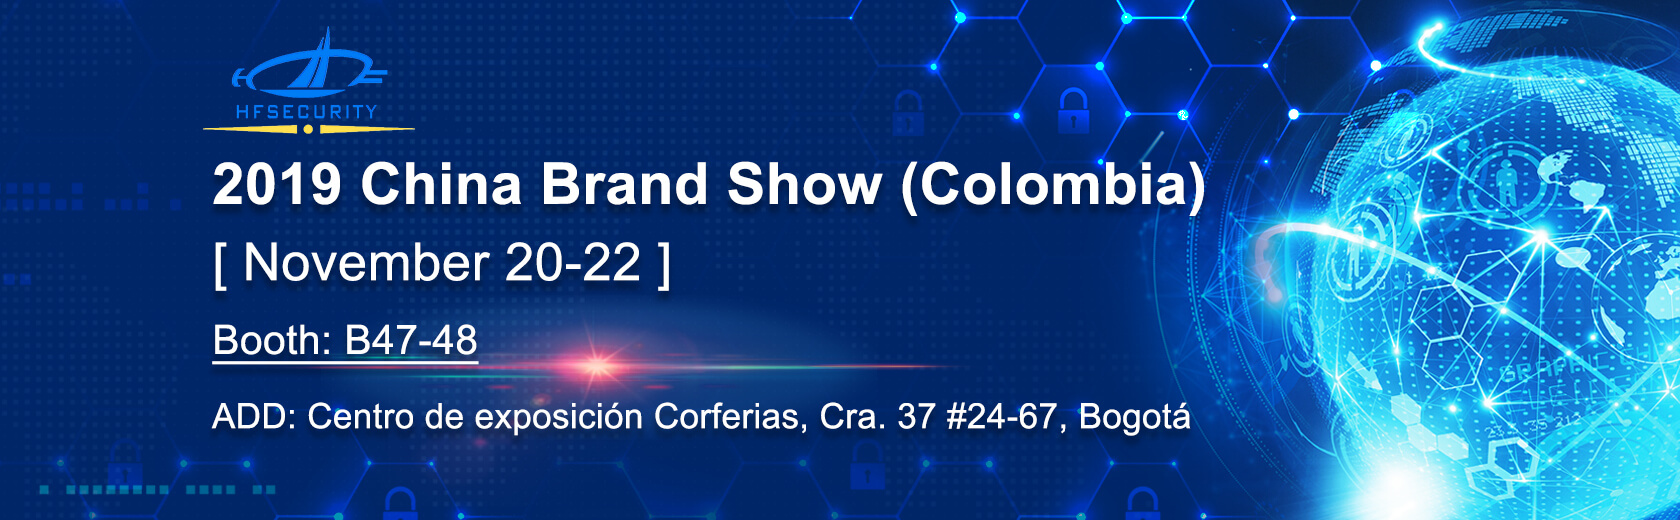 2019 China Brand Show( Colombia)